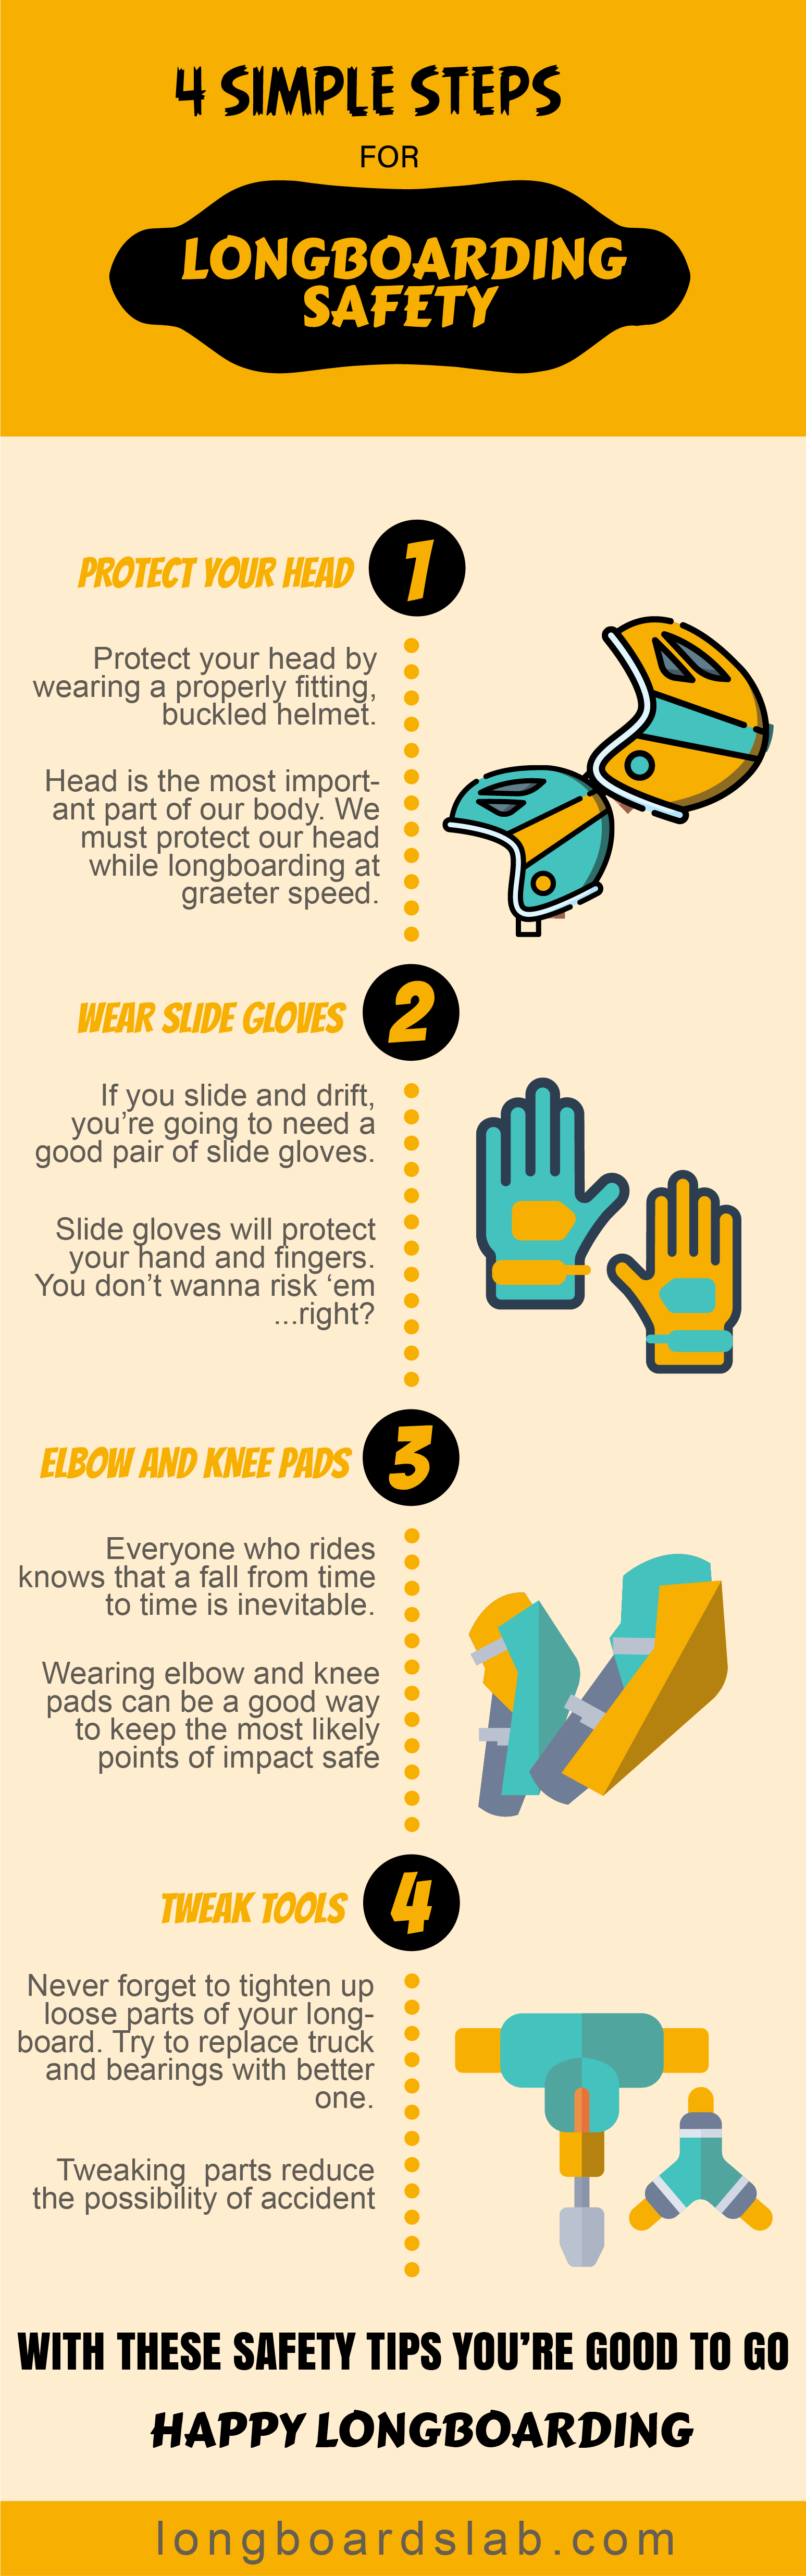 Longboarding Safety Tips Longboards Lab Slide gloves